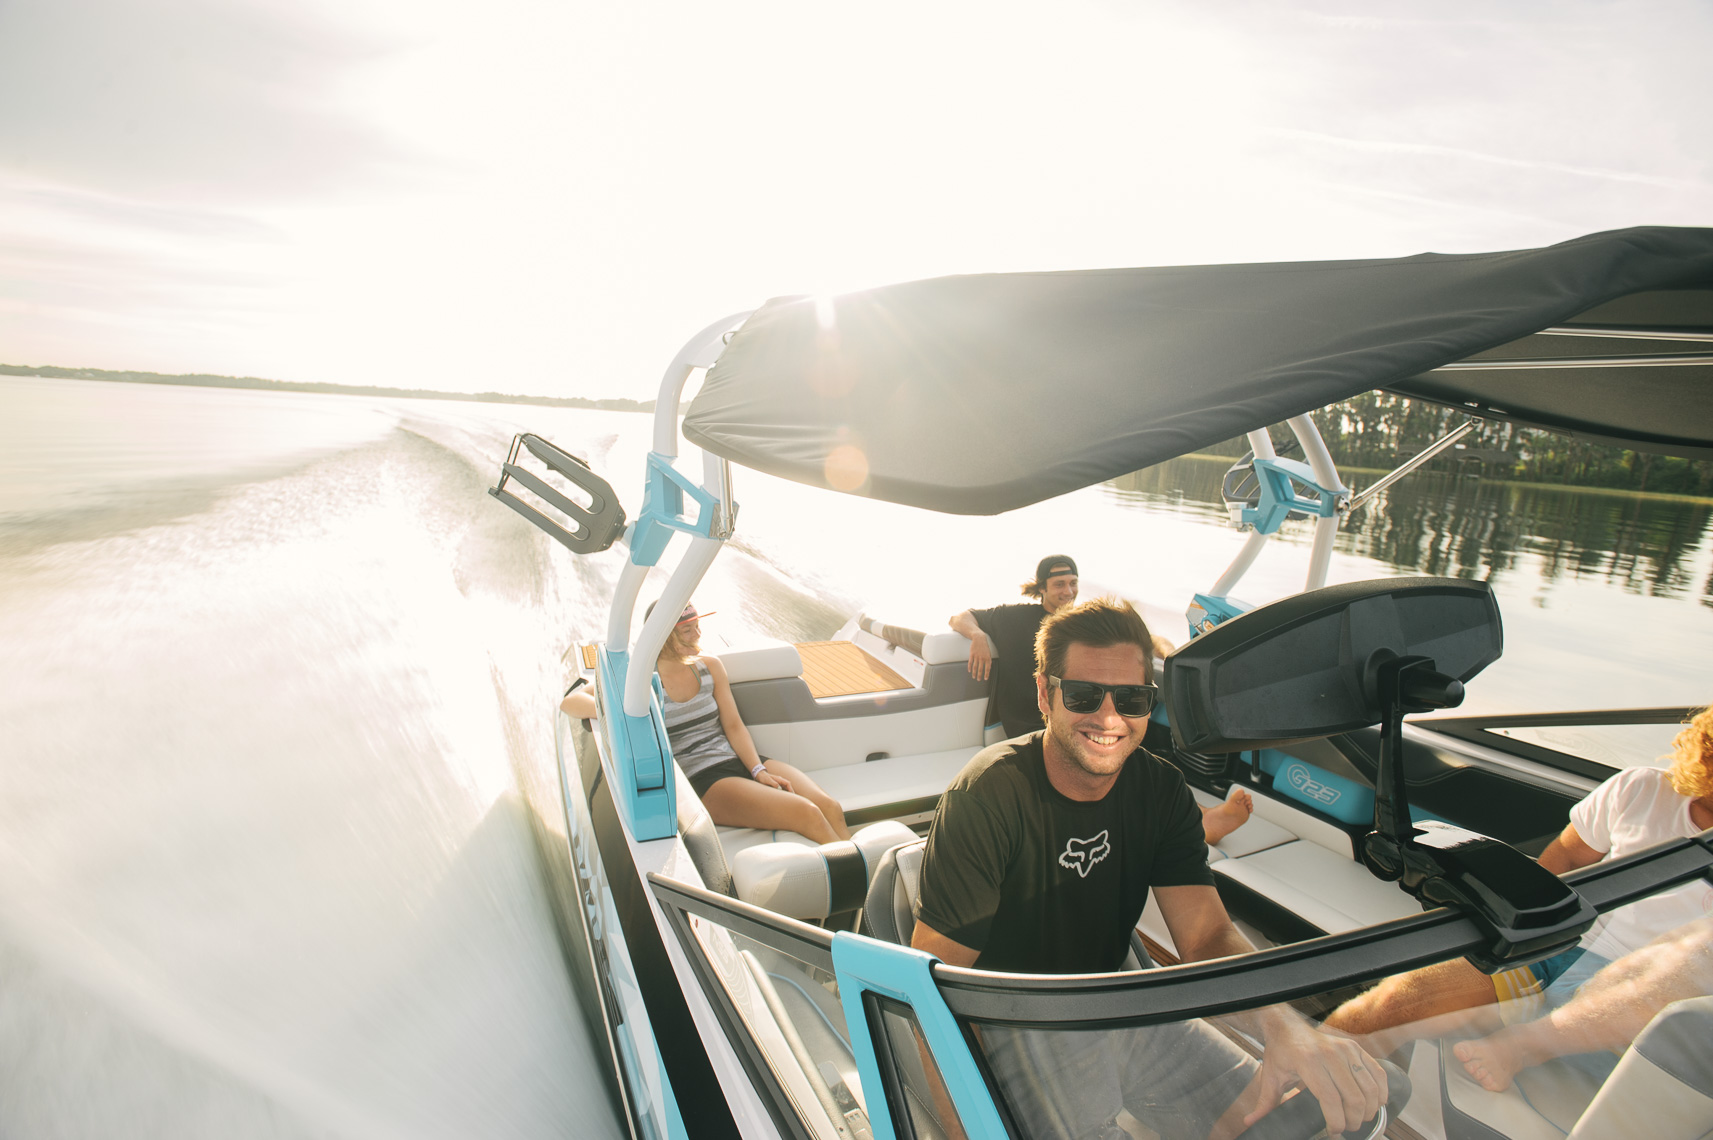 nautique_harf_driving_g23_070714_lowres_LEE-0575